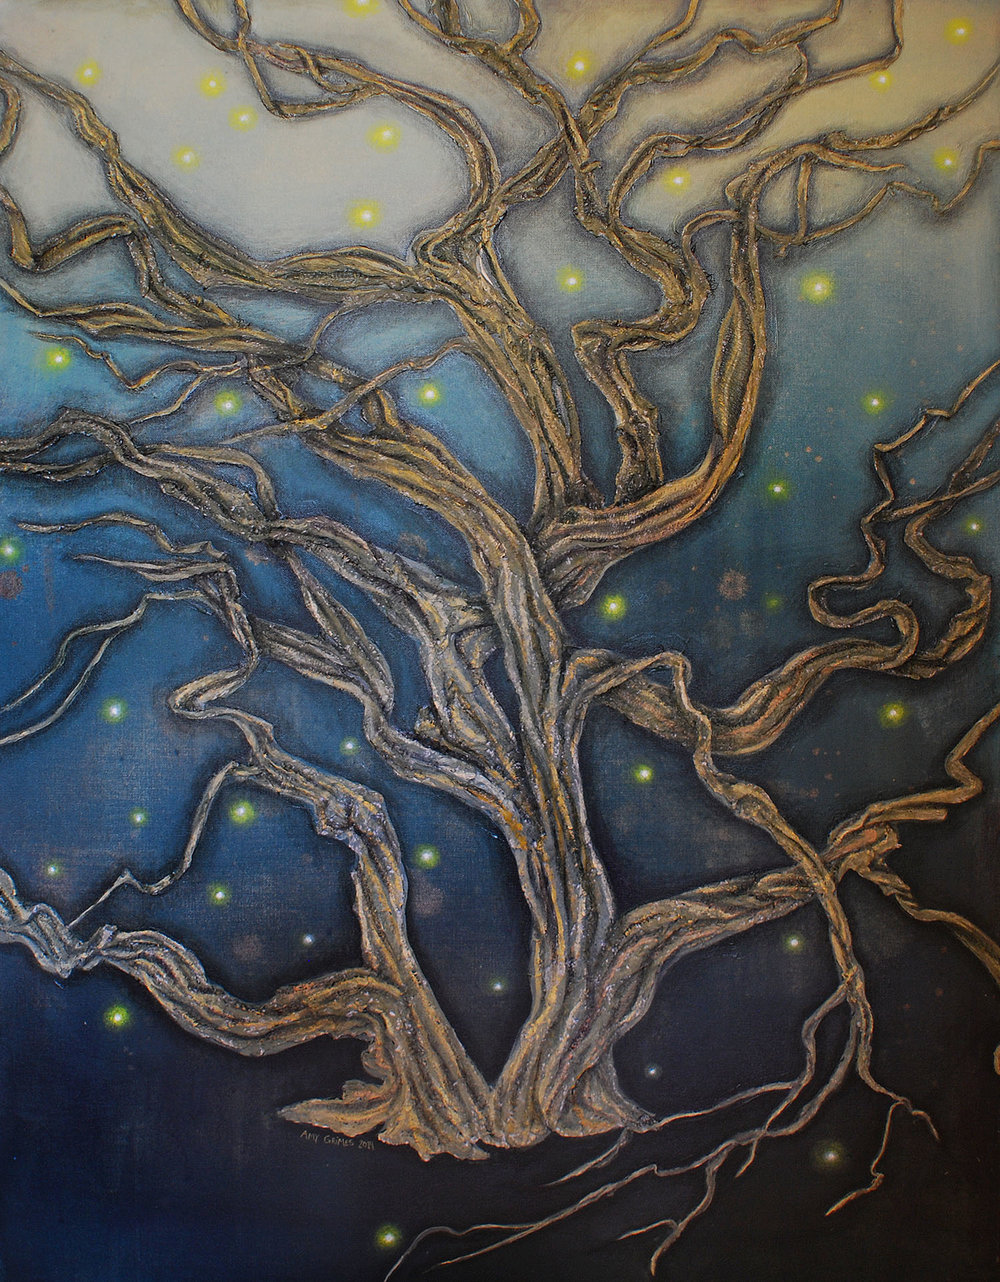 GLOW 30X40 Mixed-Media   Acrylic on Gallery Canvas  $850.00 + Shipping & Tax (if applicable)  Contact For Purchase   The lights in this tree are stubborn. They insist on burning their low, steady light in celebration of life. Life—with its green, growing hope. The lights won't wait for blades of grass to reach up from the ground. They won't wait for leaves to dot the branches of the twisty tree or for the sun to break through the gloom. They celebrate now—in the hazy darkness—because they know that dawn is coming.